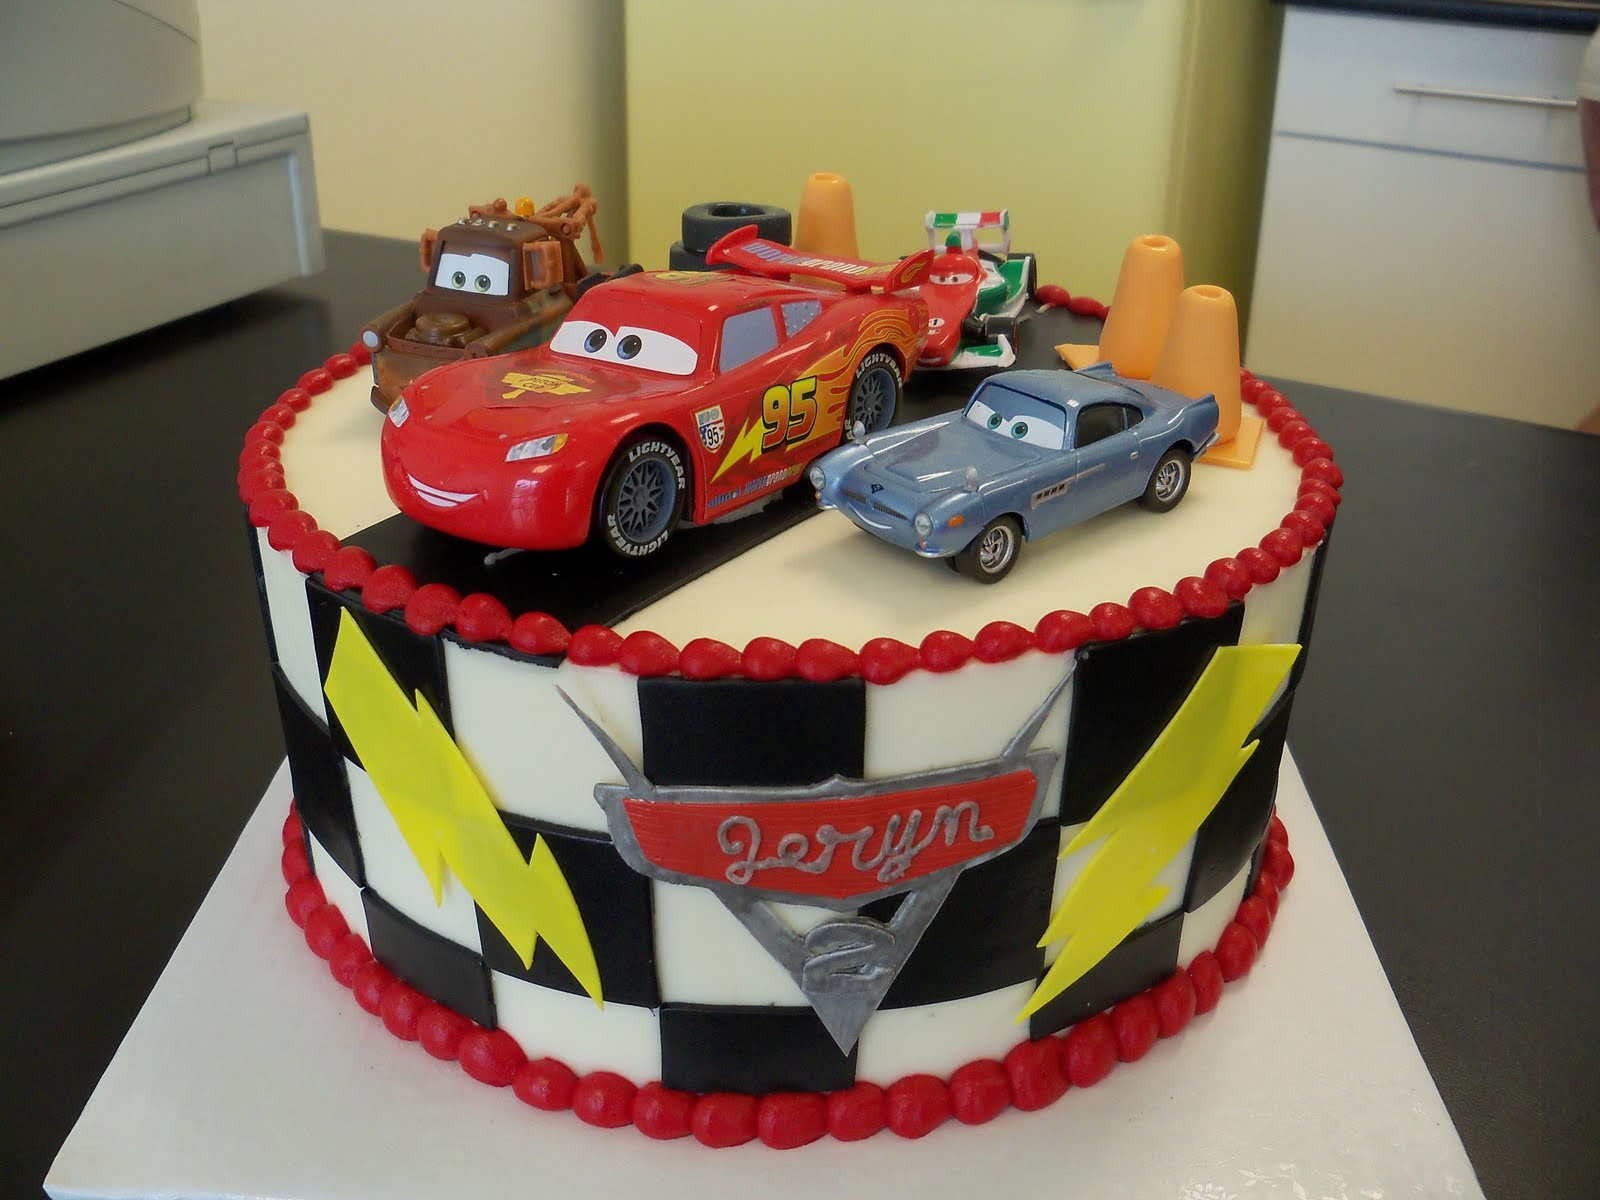 Surprising Cars Cakes Decoration Ideas Little Birthday Cakes Funny Birthday Cards Online Alyptdamsfinfo